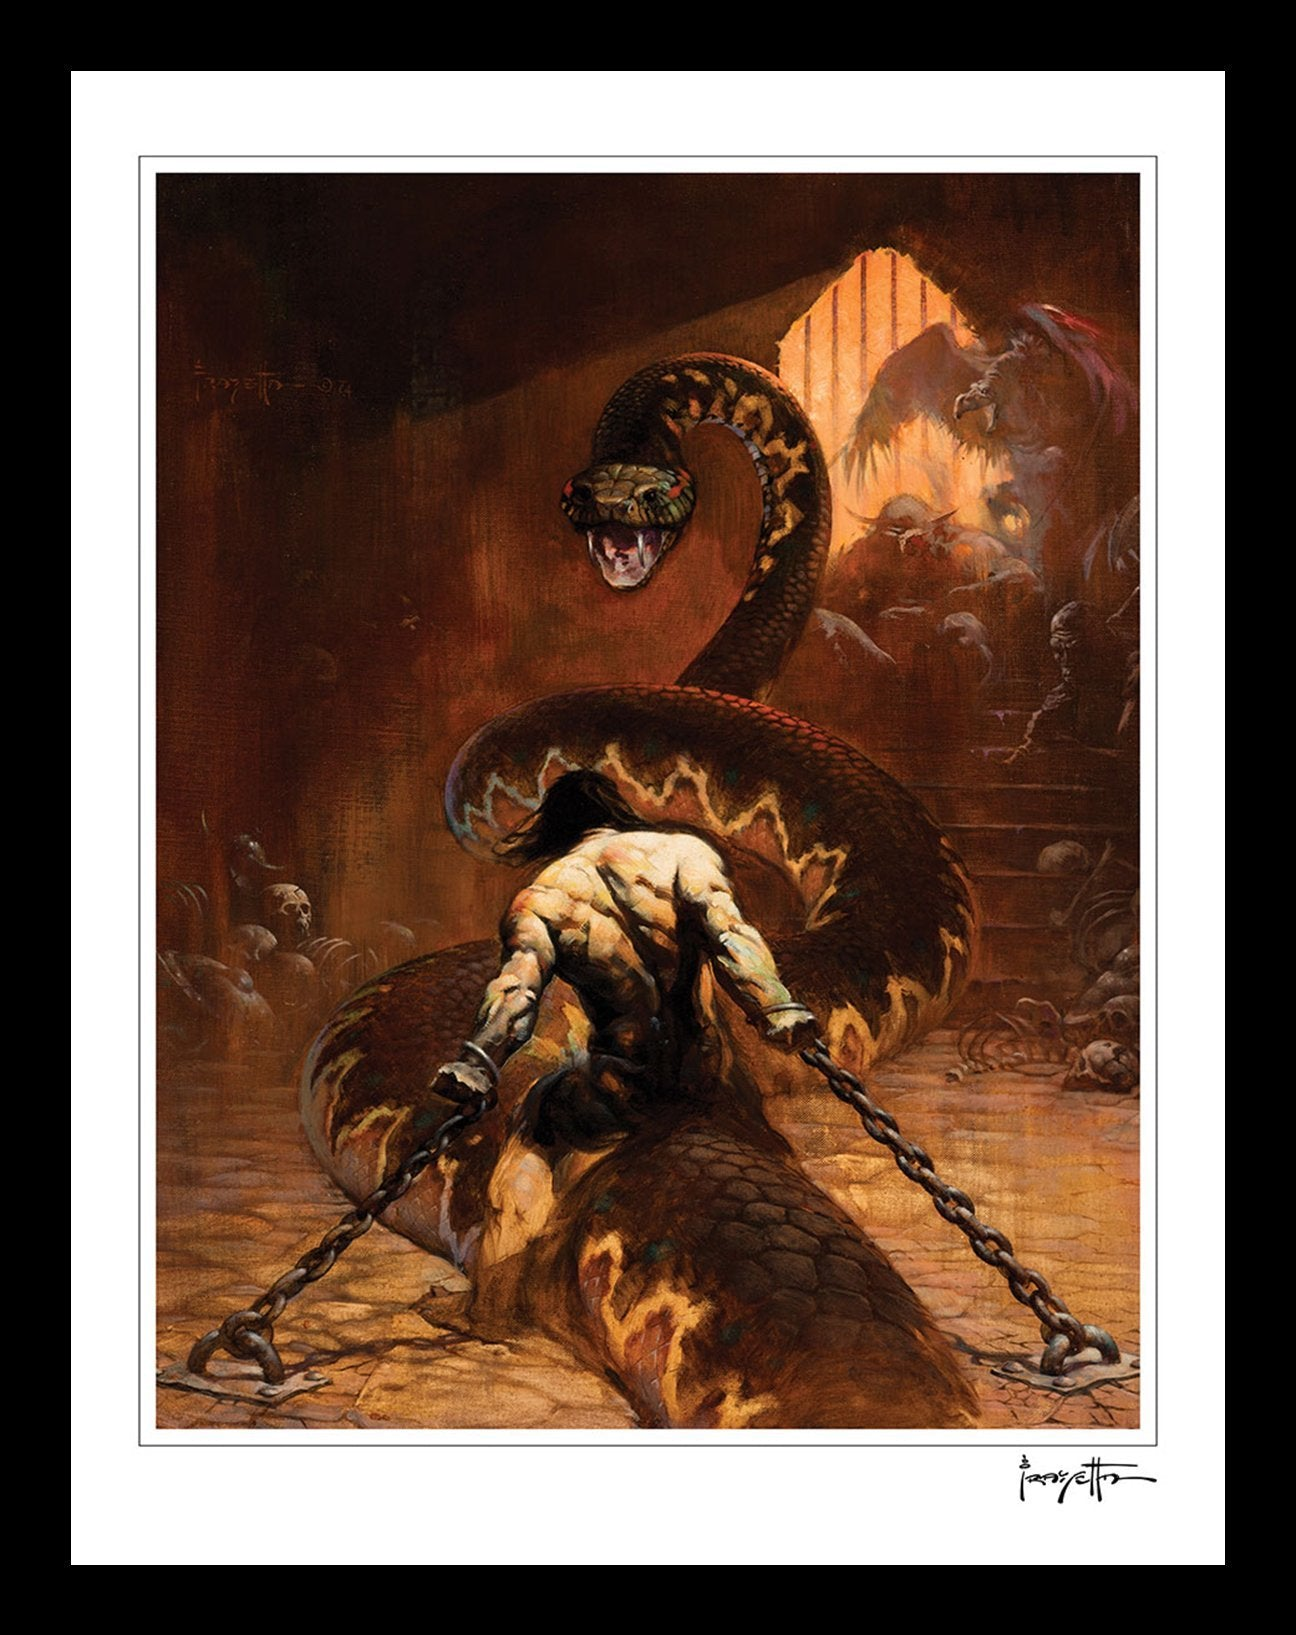 FrazettaGirls Art Print Conan Chained Print